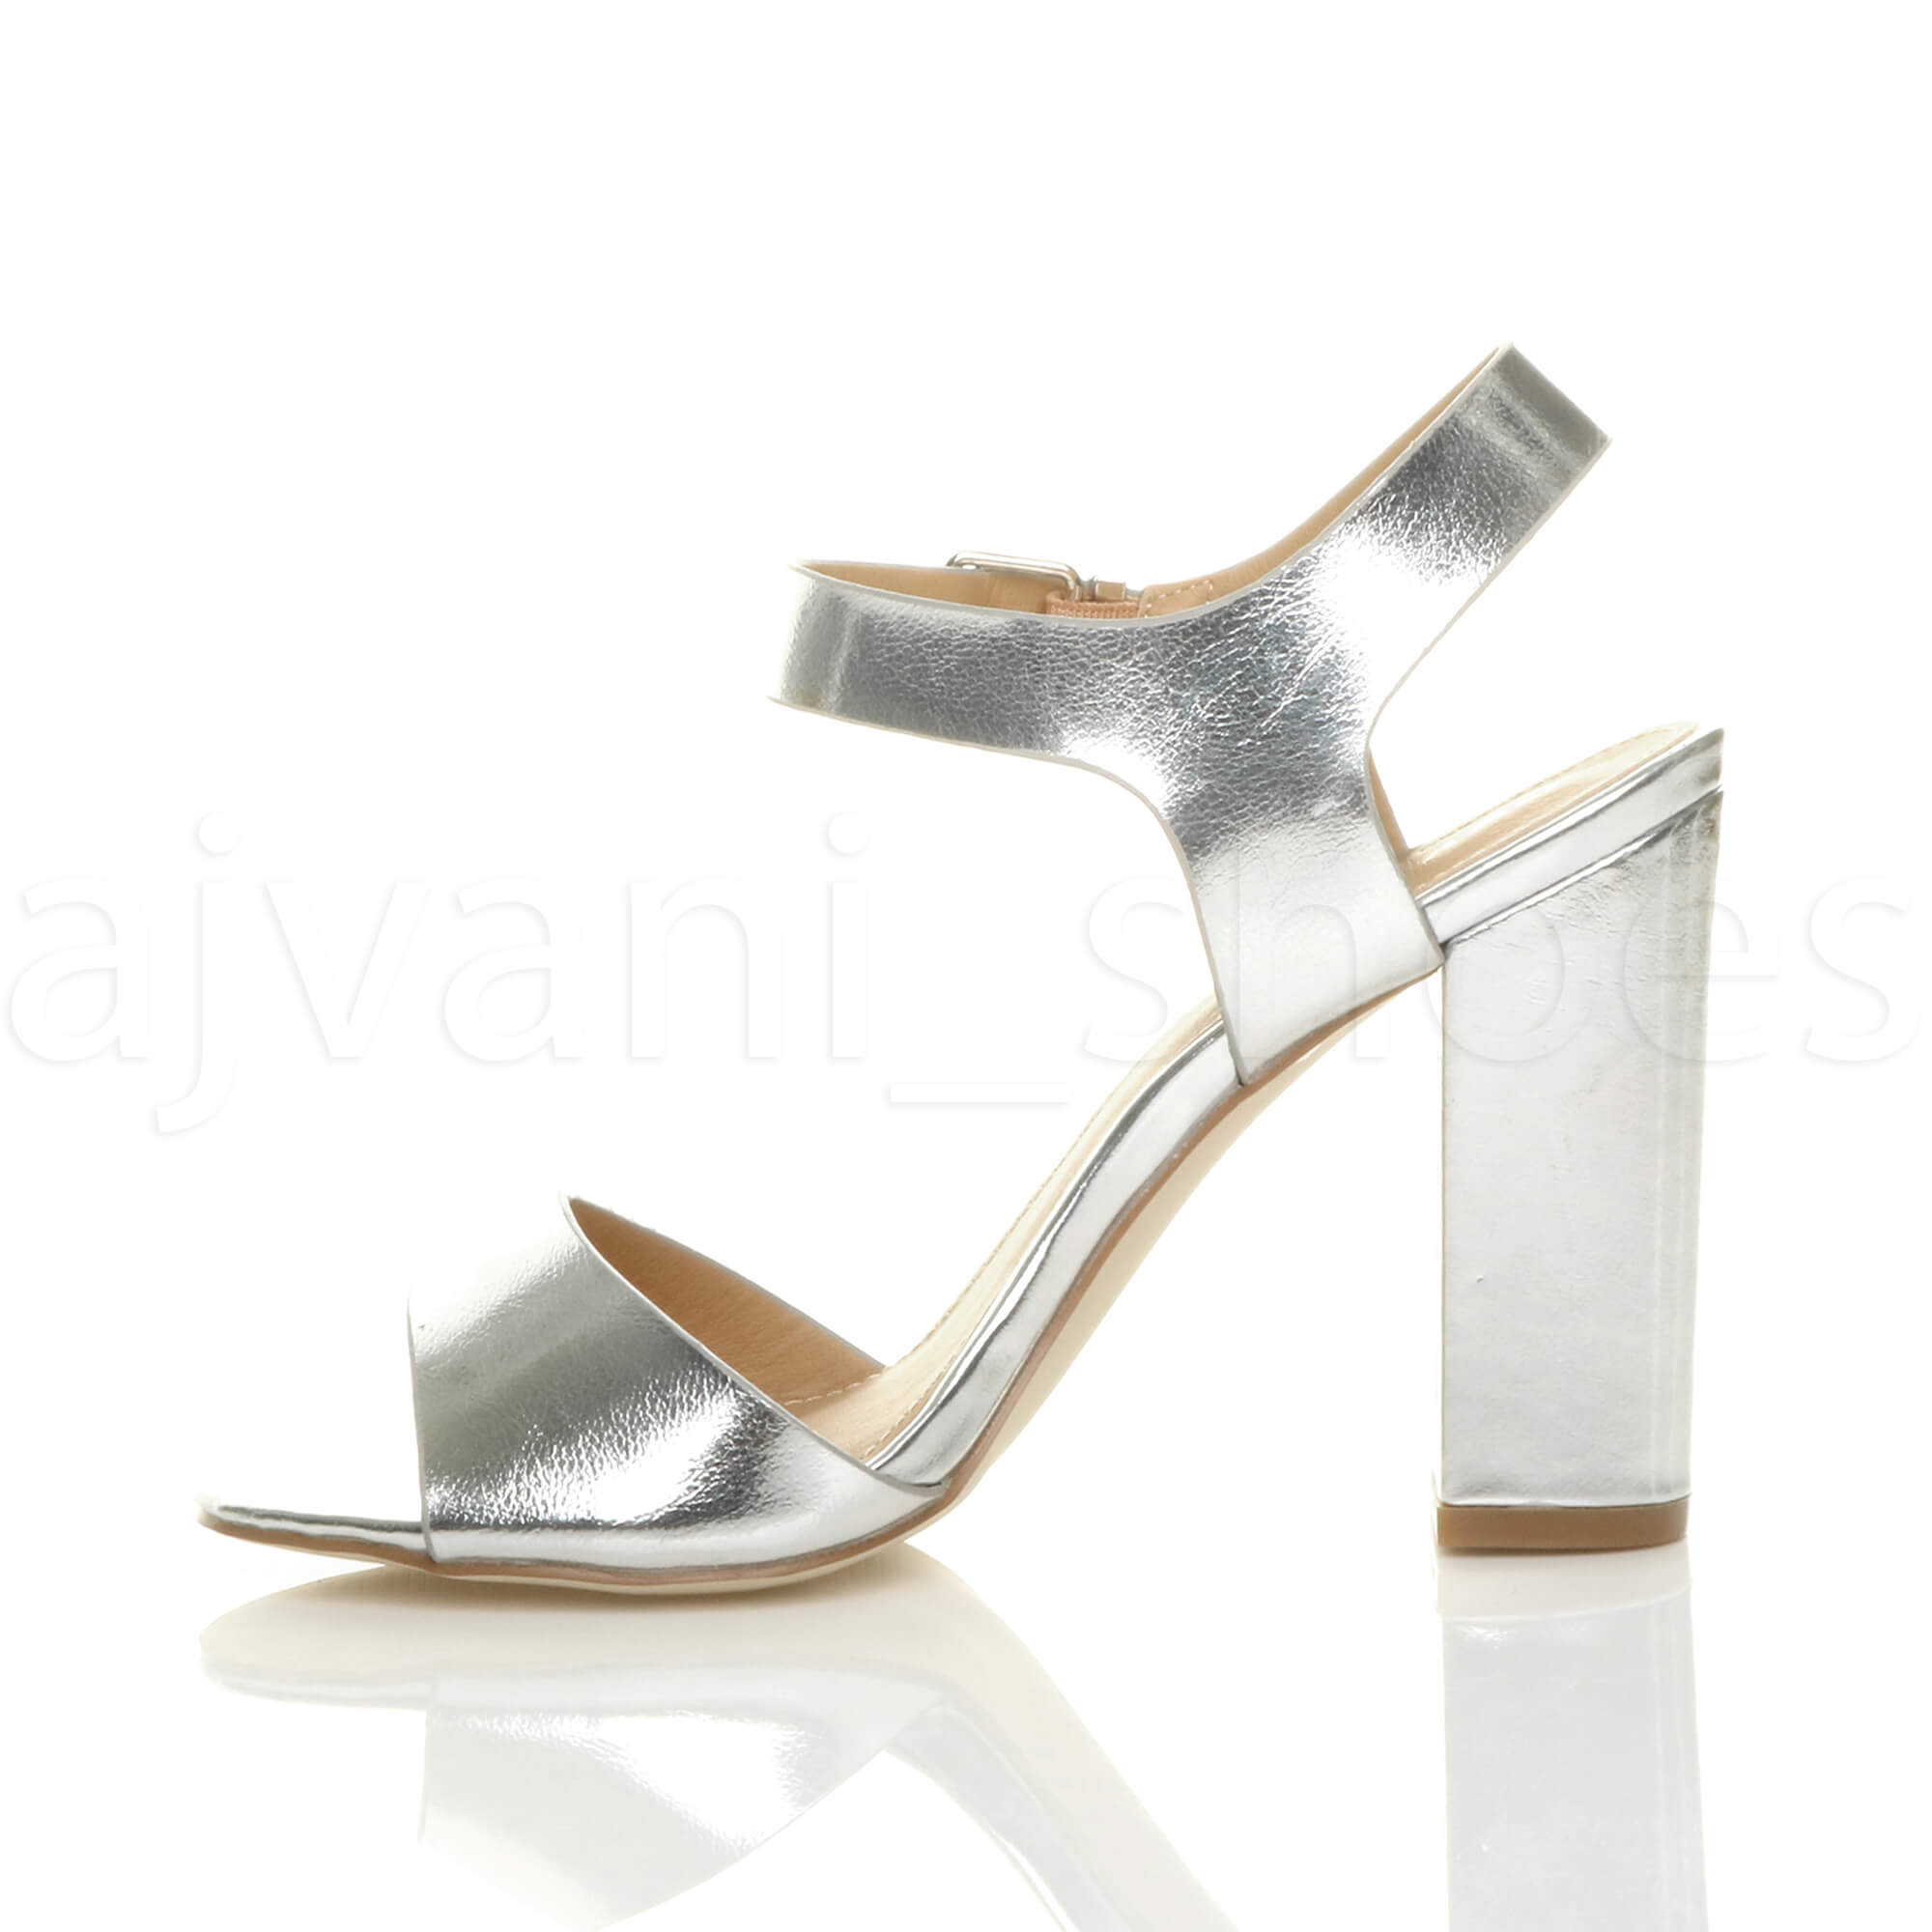 98163c01a888 WOMENS LADIES HIGH BLOCK HEEL ANKLE STRAP BUCKLE PEEP TOE .